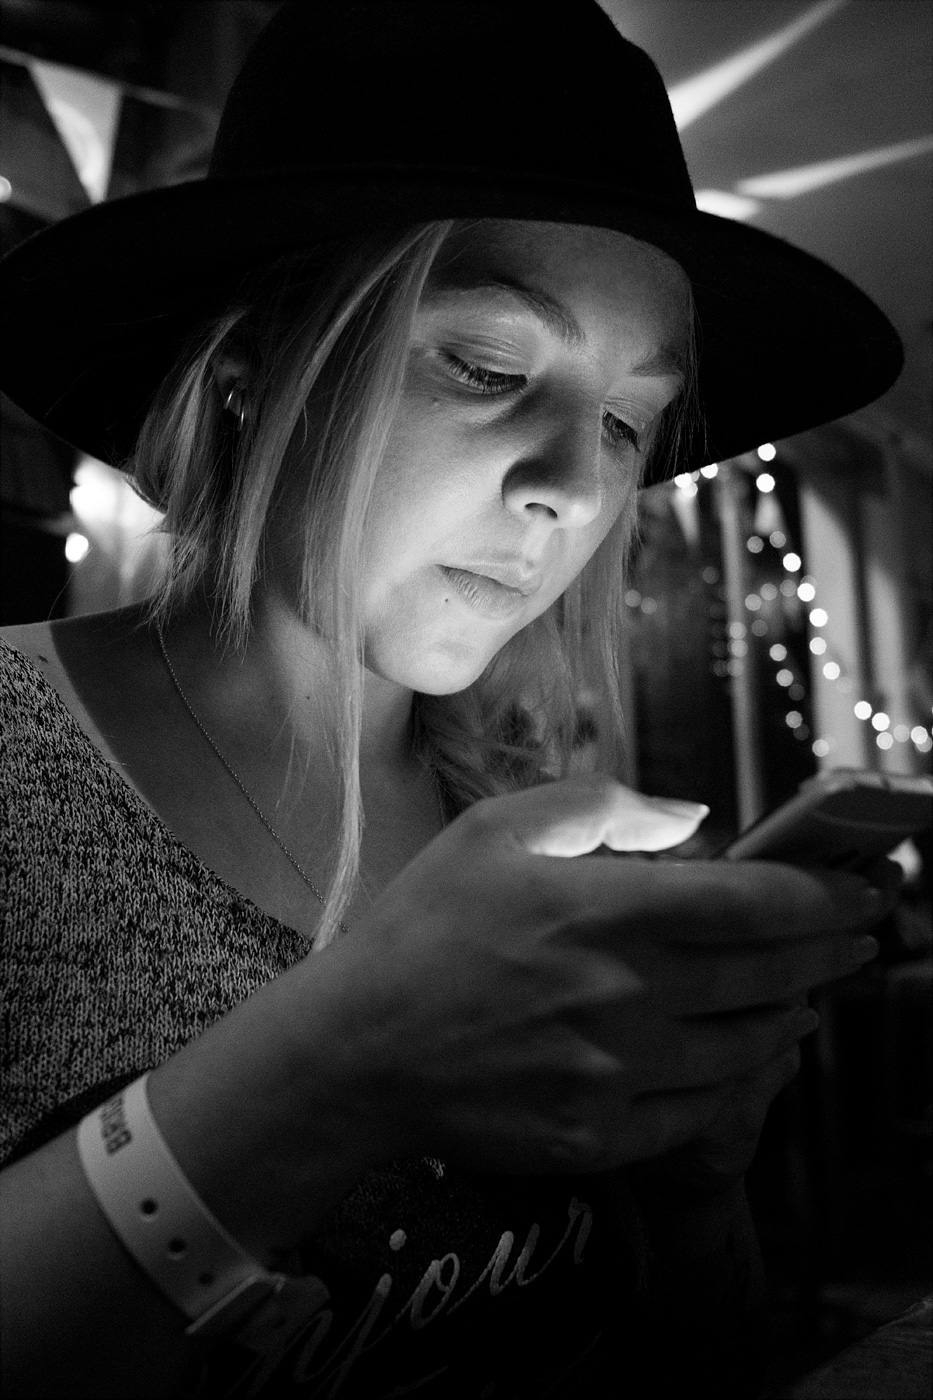 Young woman in bar illuminated by light from mobile phone. Shakespeare's Head pub Brighton UK black and white nightlife portrait fujifilm XT-2 © P. Maton 2017 eyeteeth.net